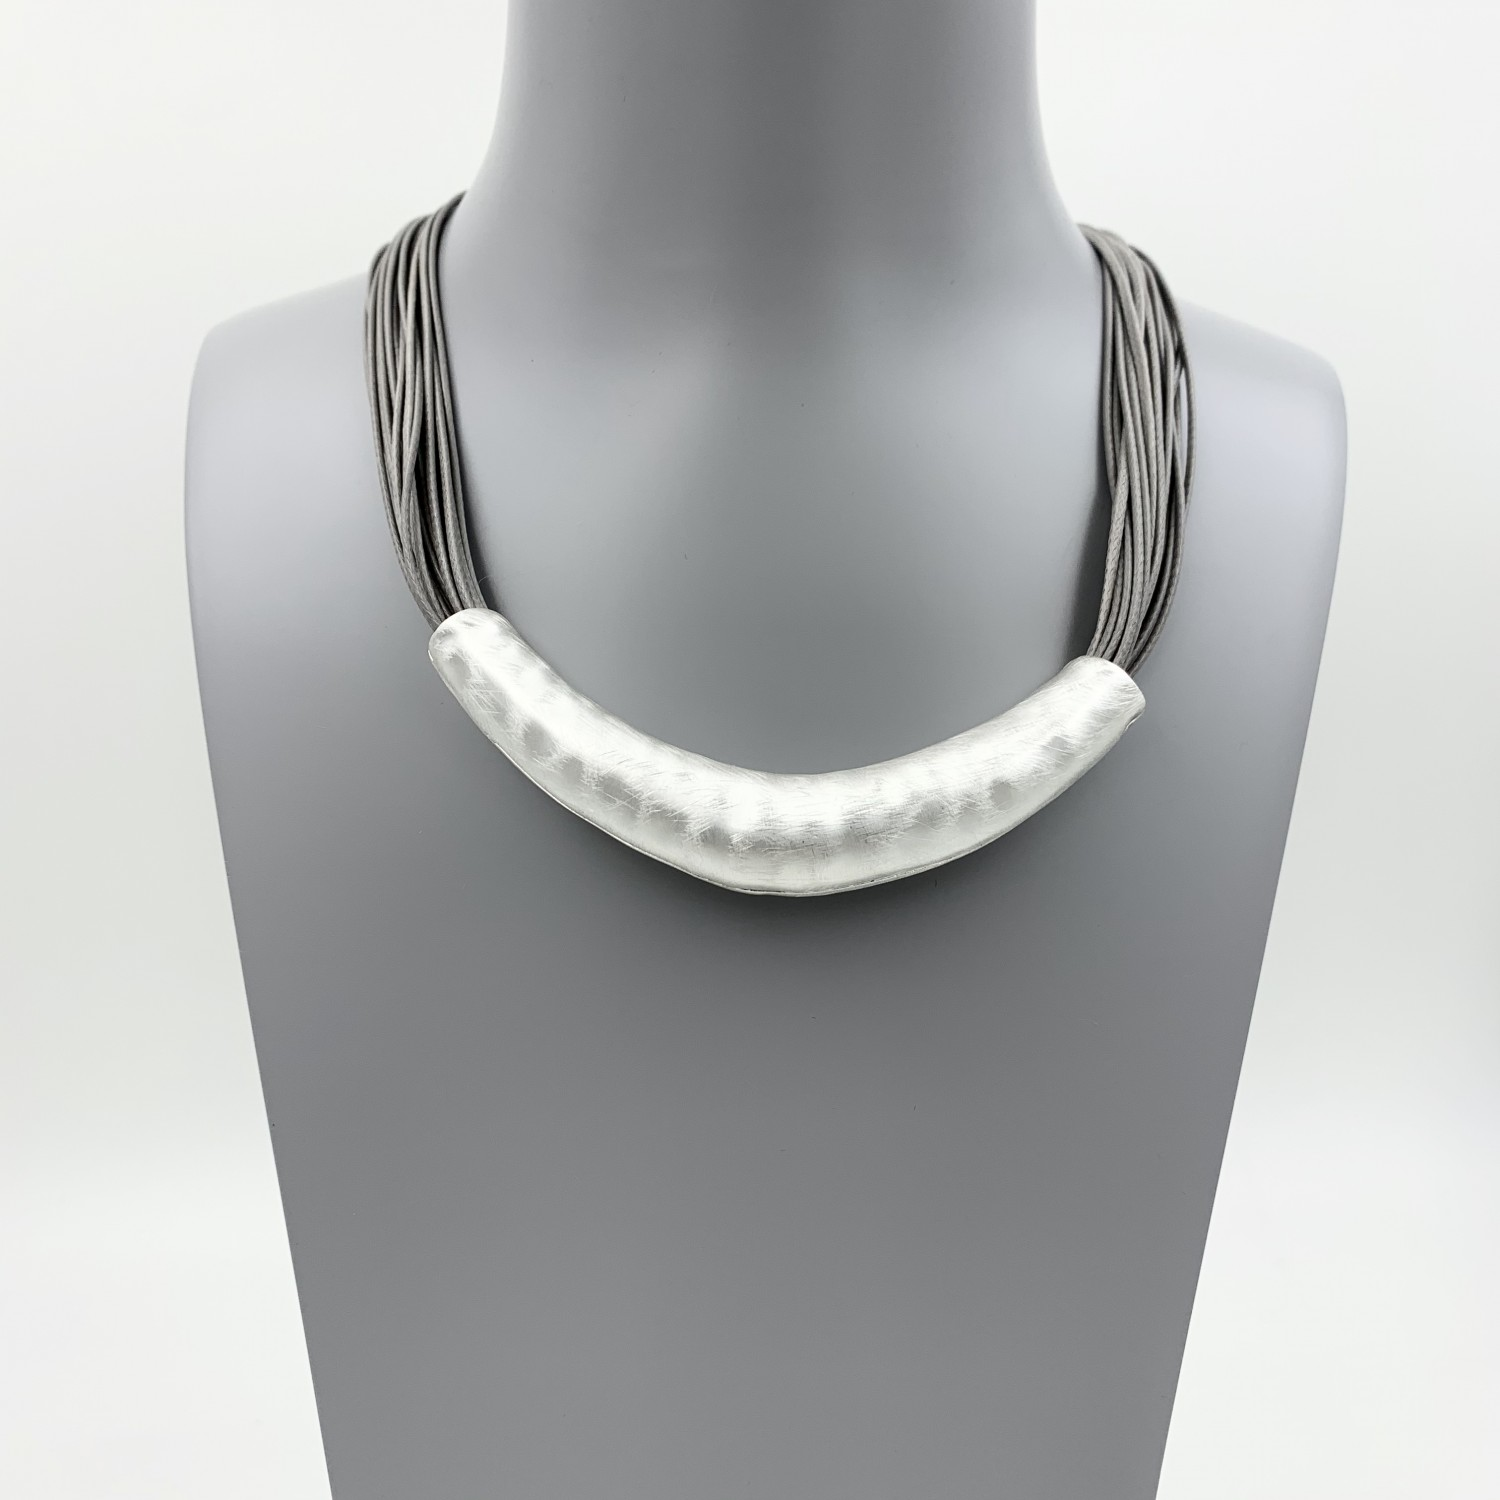 Magnetic Hammered Effect Necklace - Silver